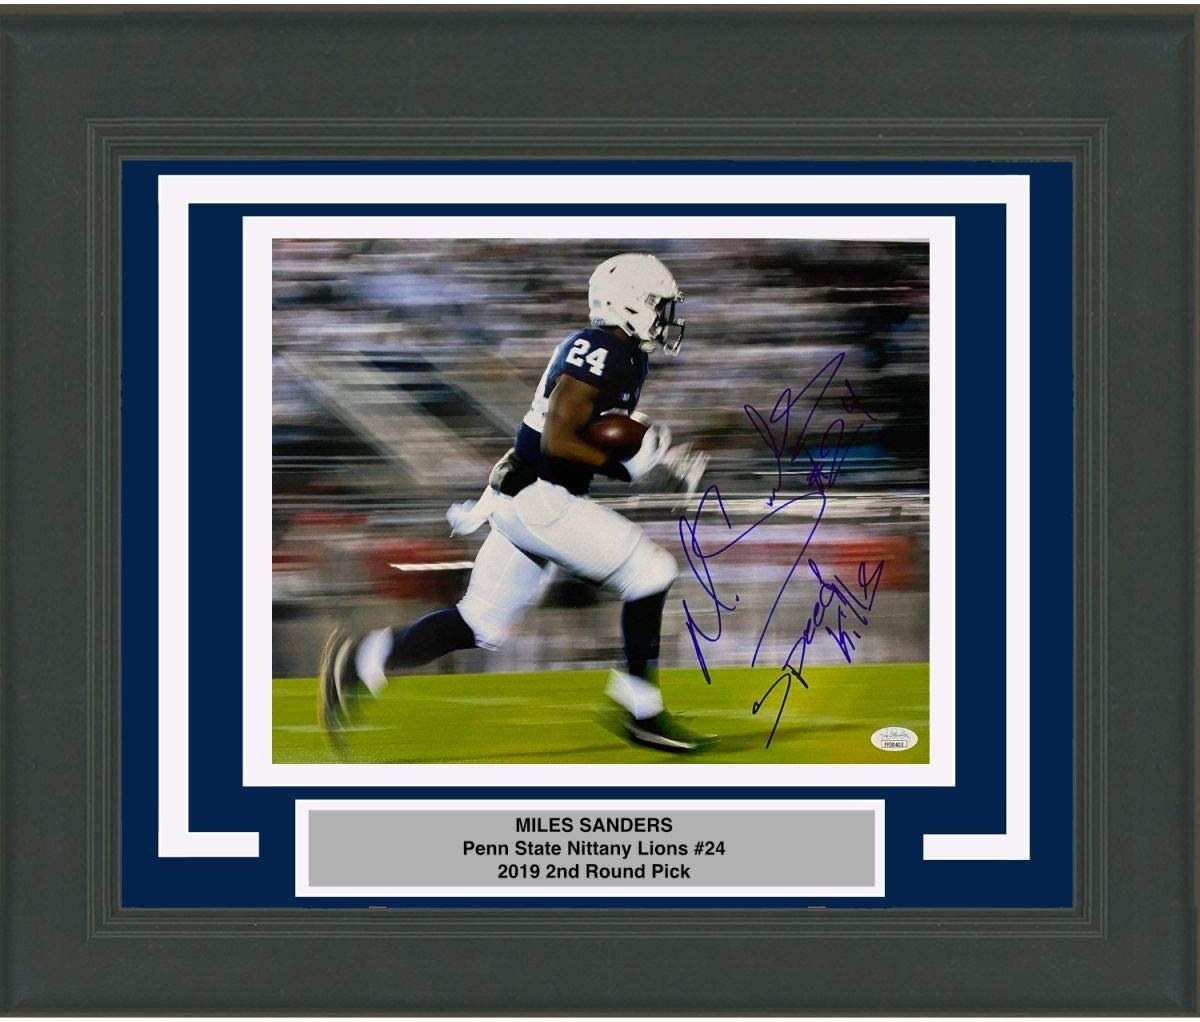 Framed Recommendation Autographed Signed Miles Sanders Nit Super popular specialty store Inscribed State Penn